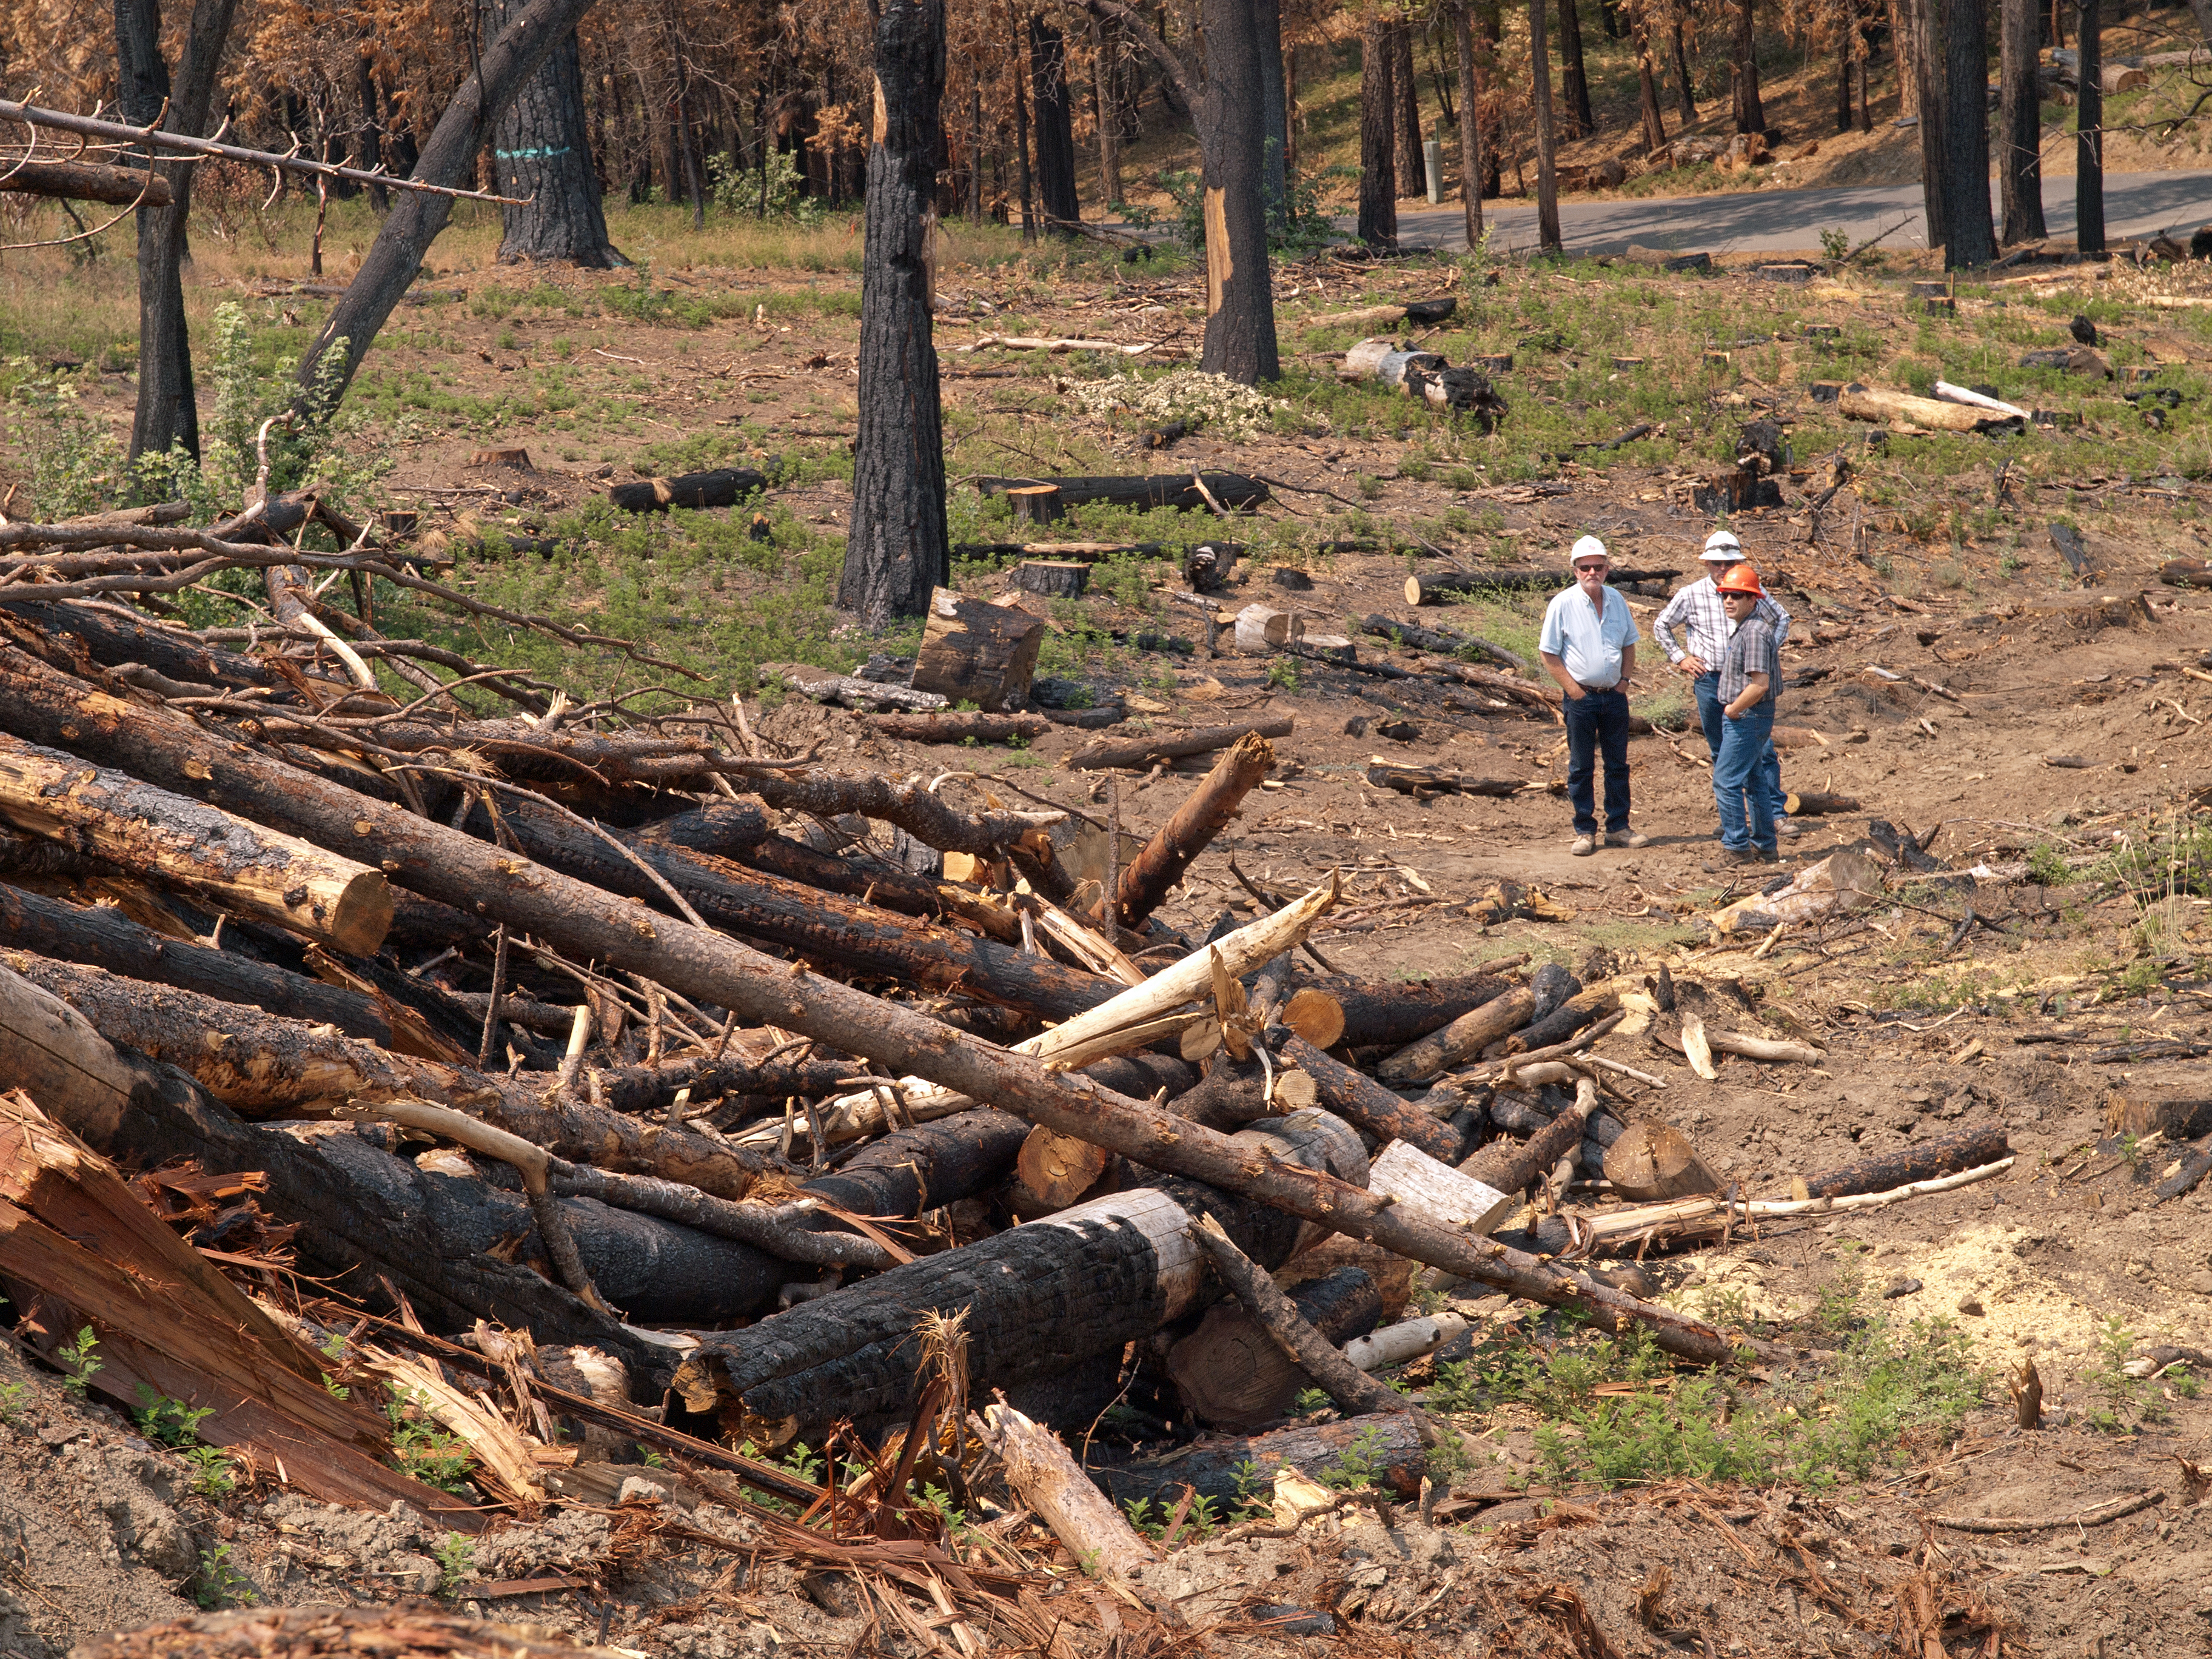 A picture of three members of a BAER team, wearing hard hats, looking over an area that has recently burned with trees and brush in a pile.